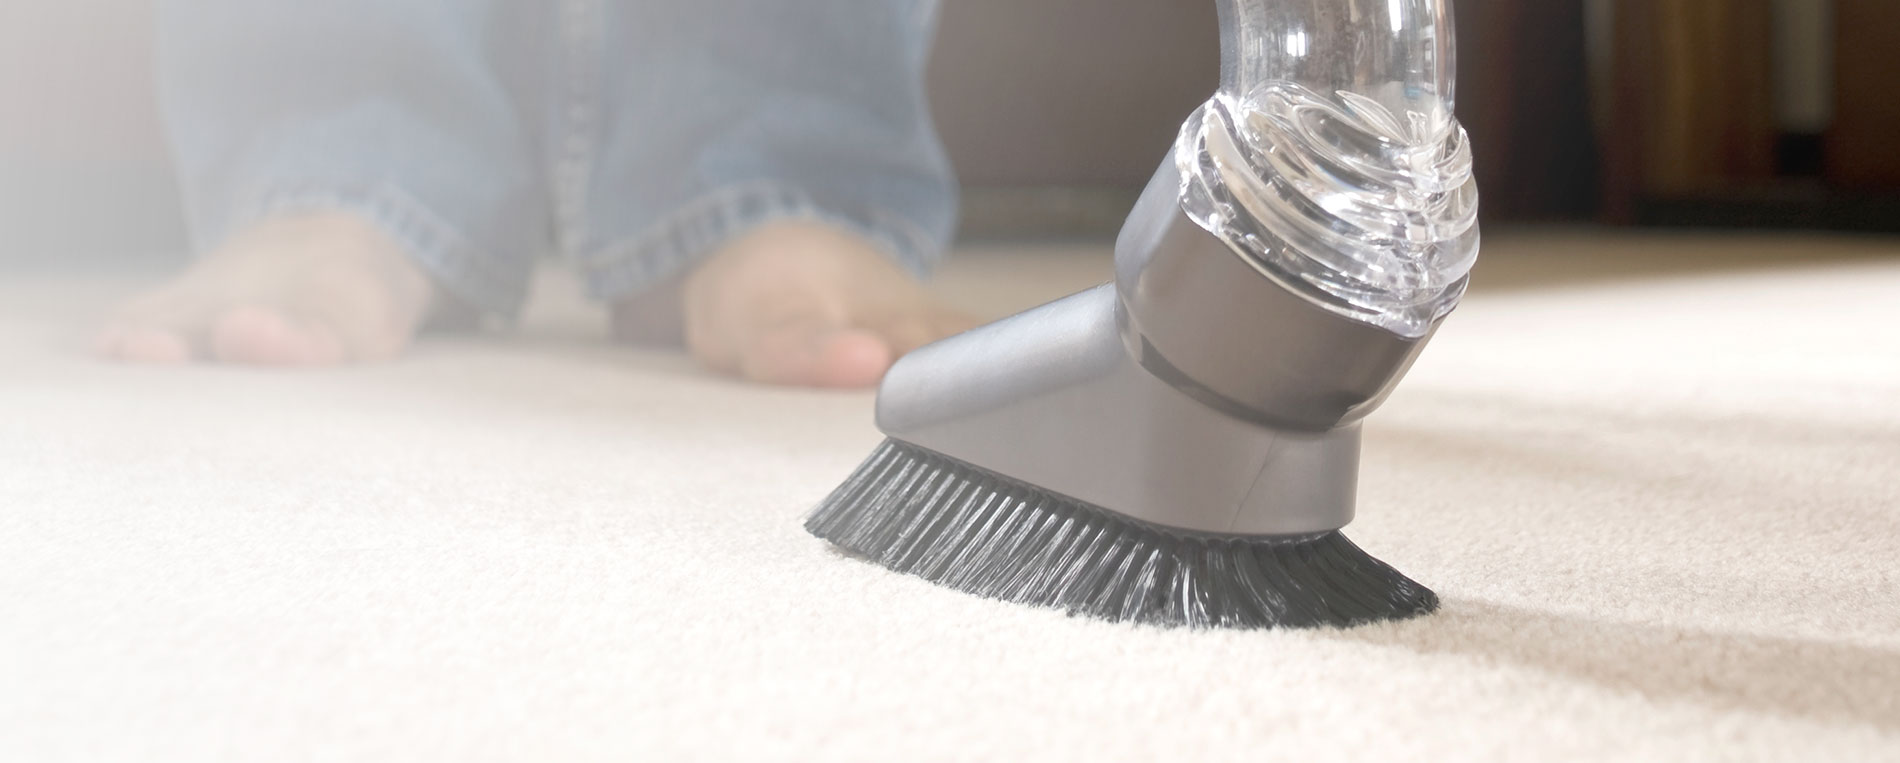 Carpet Cleaning San Marino